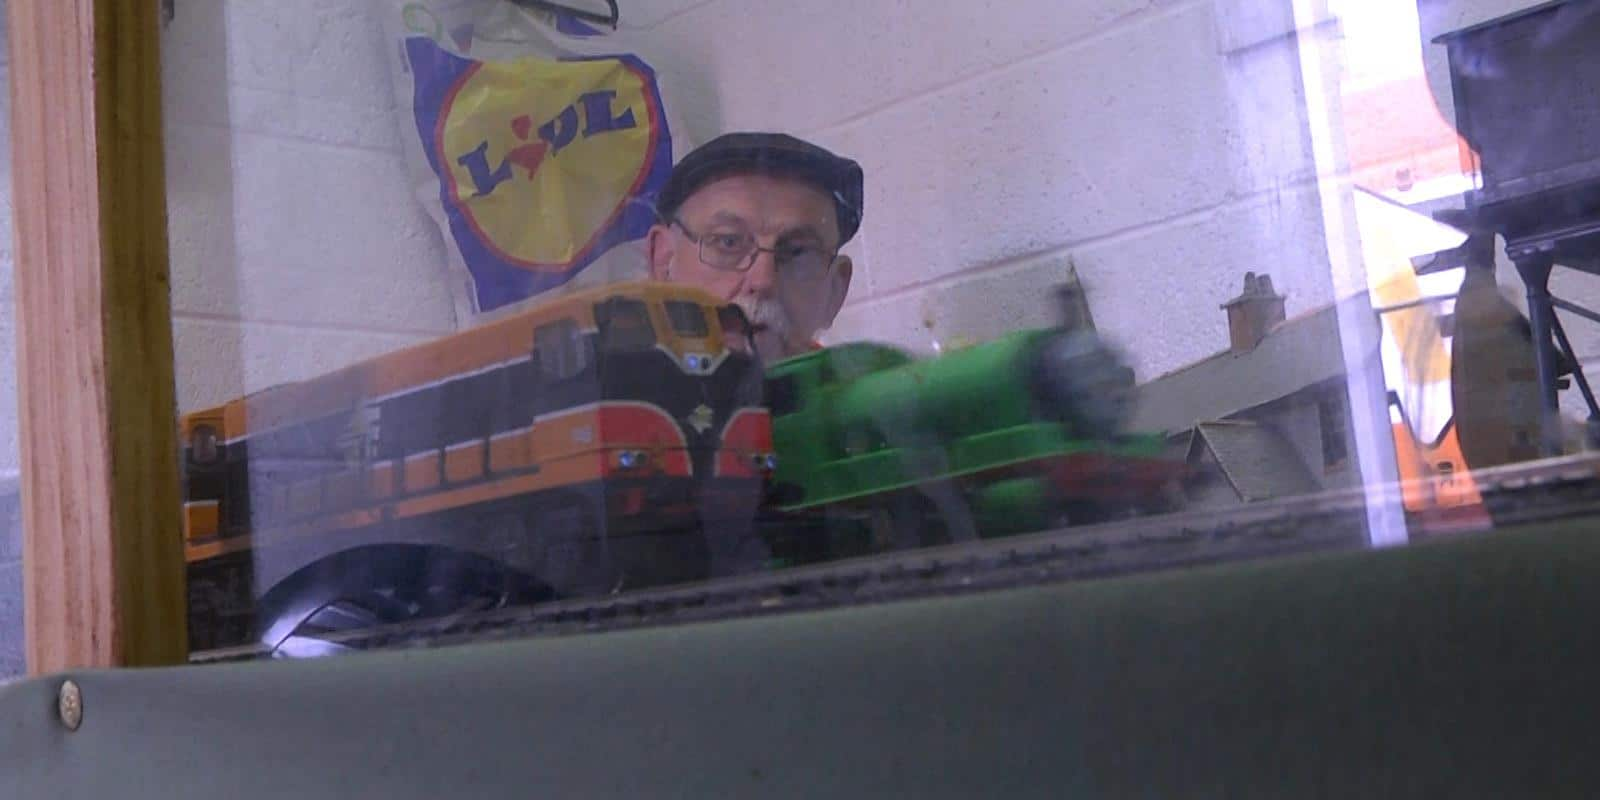 The unlikely sight of Downpatrick-based diesel loco No. 146 being overtaken by 'Percy'!